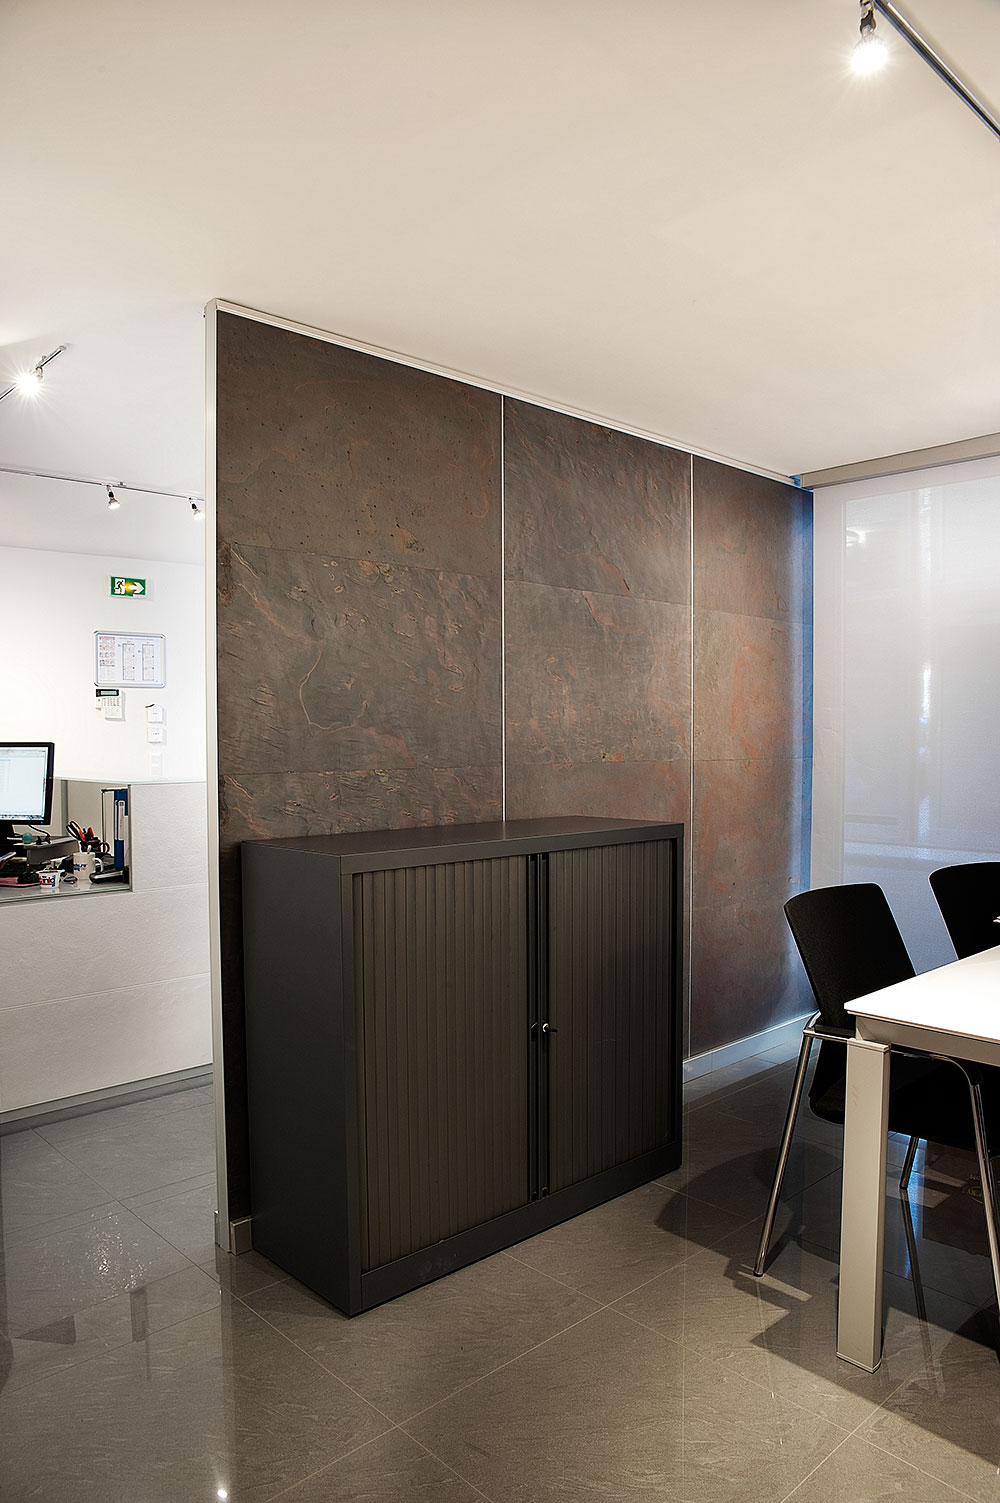 Reception counter and iding wall & Reception counter and iding wall - Porte scorrevoli e battenti ...